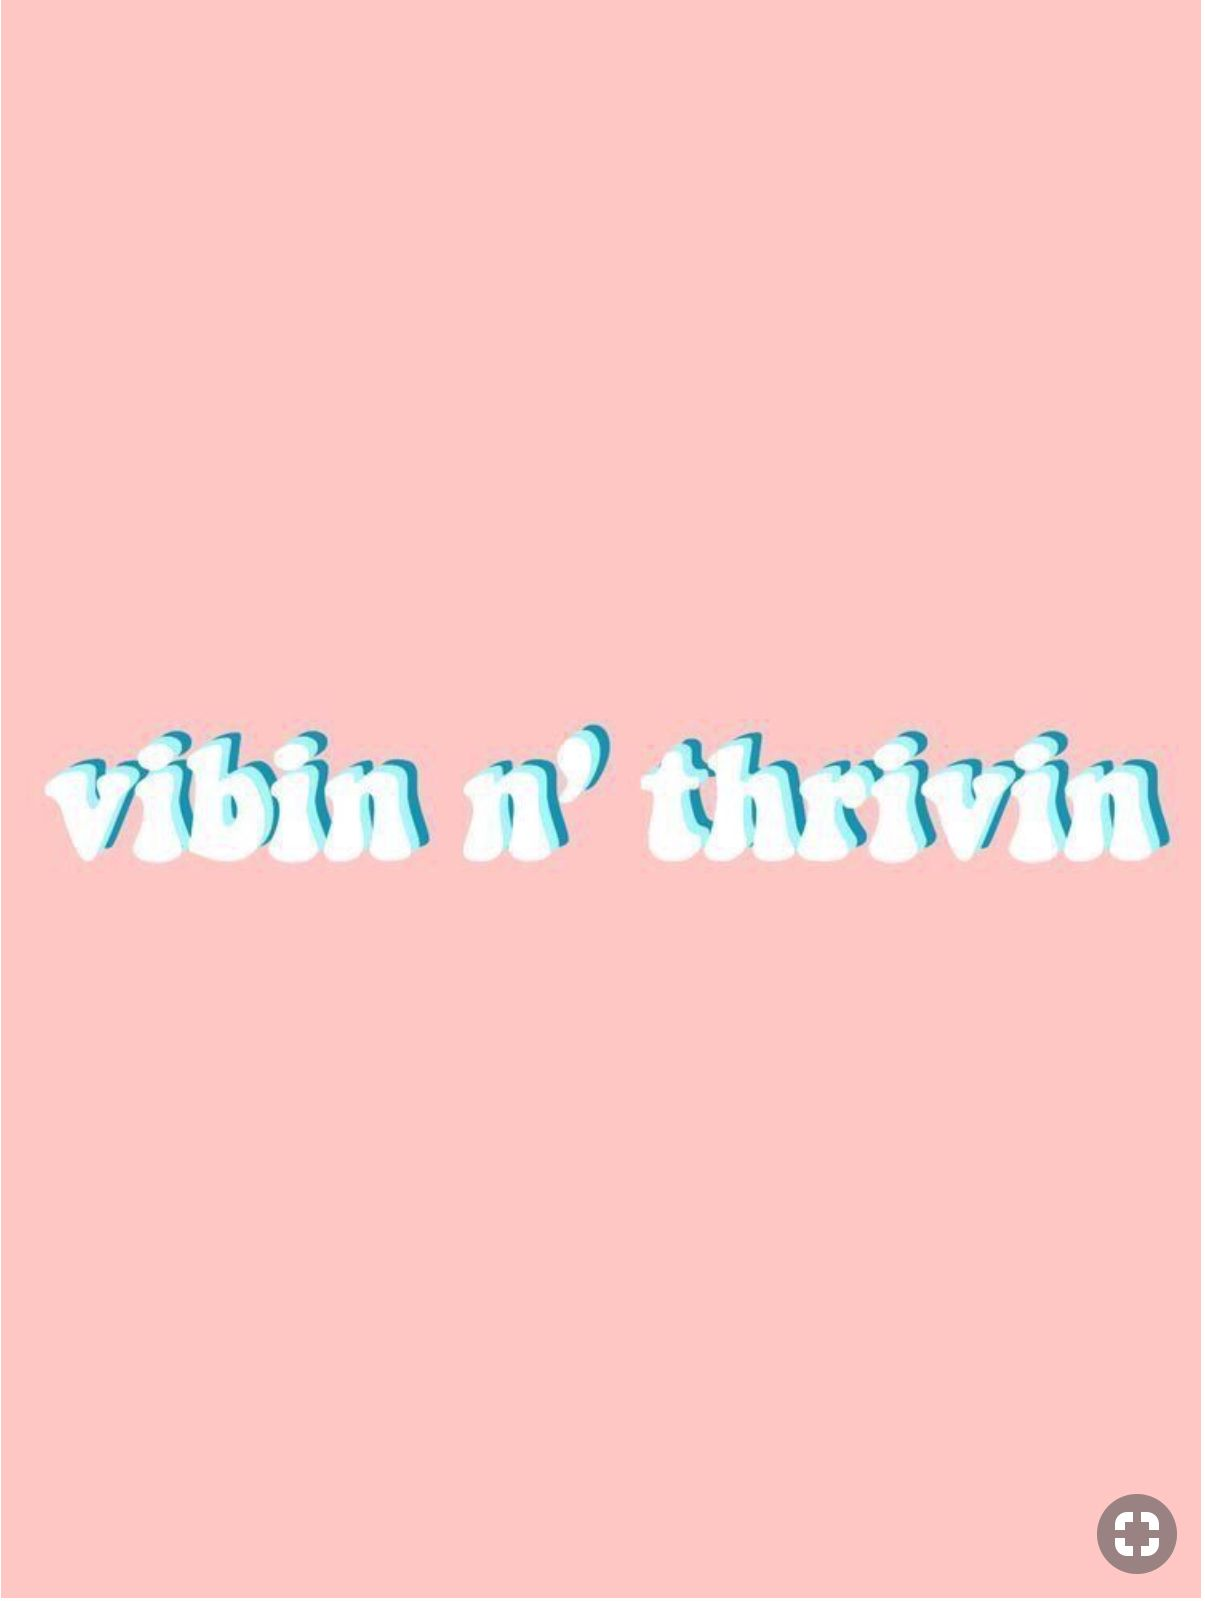 Vibin N Thriving In 2019 Words Wallpaper Cute Quotes